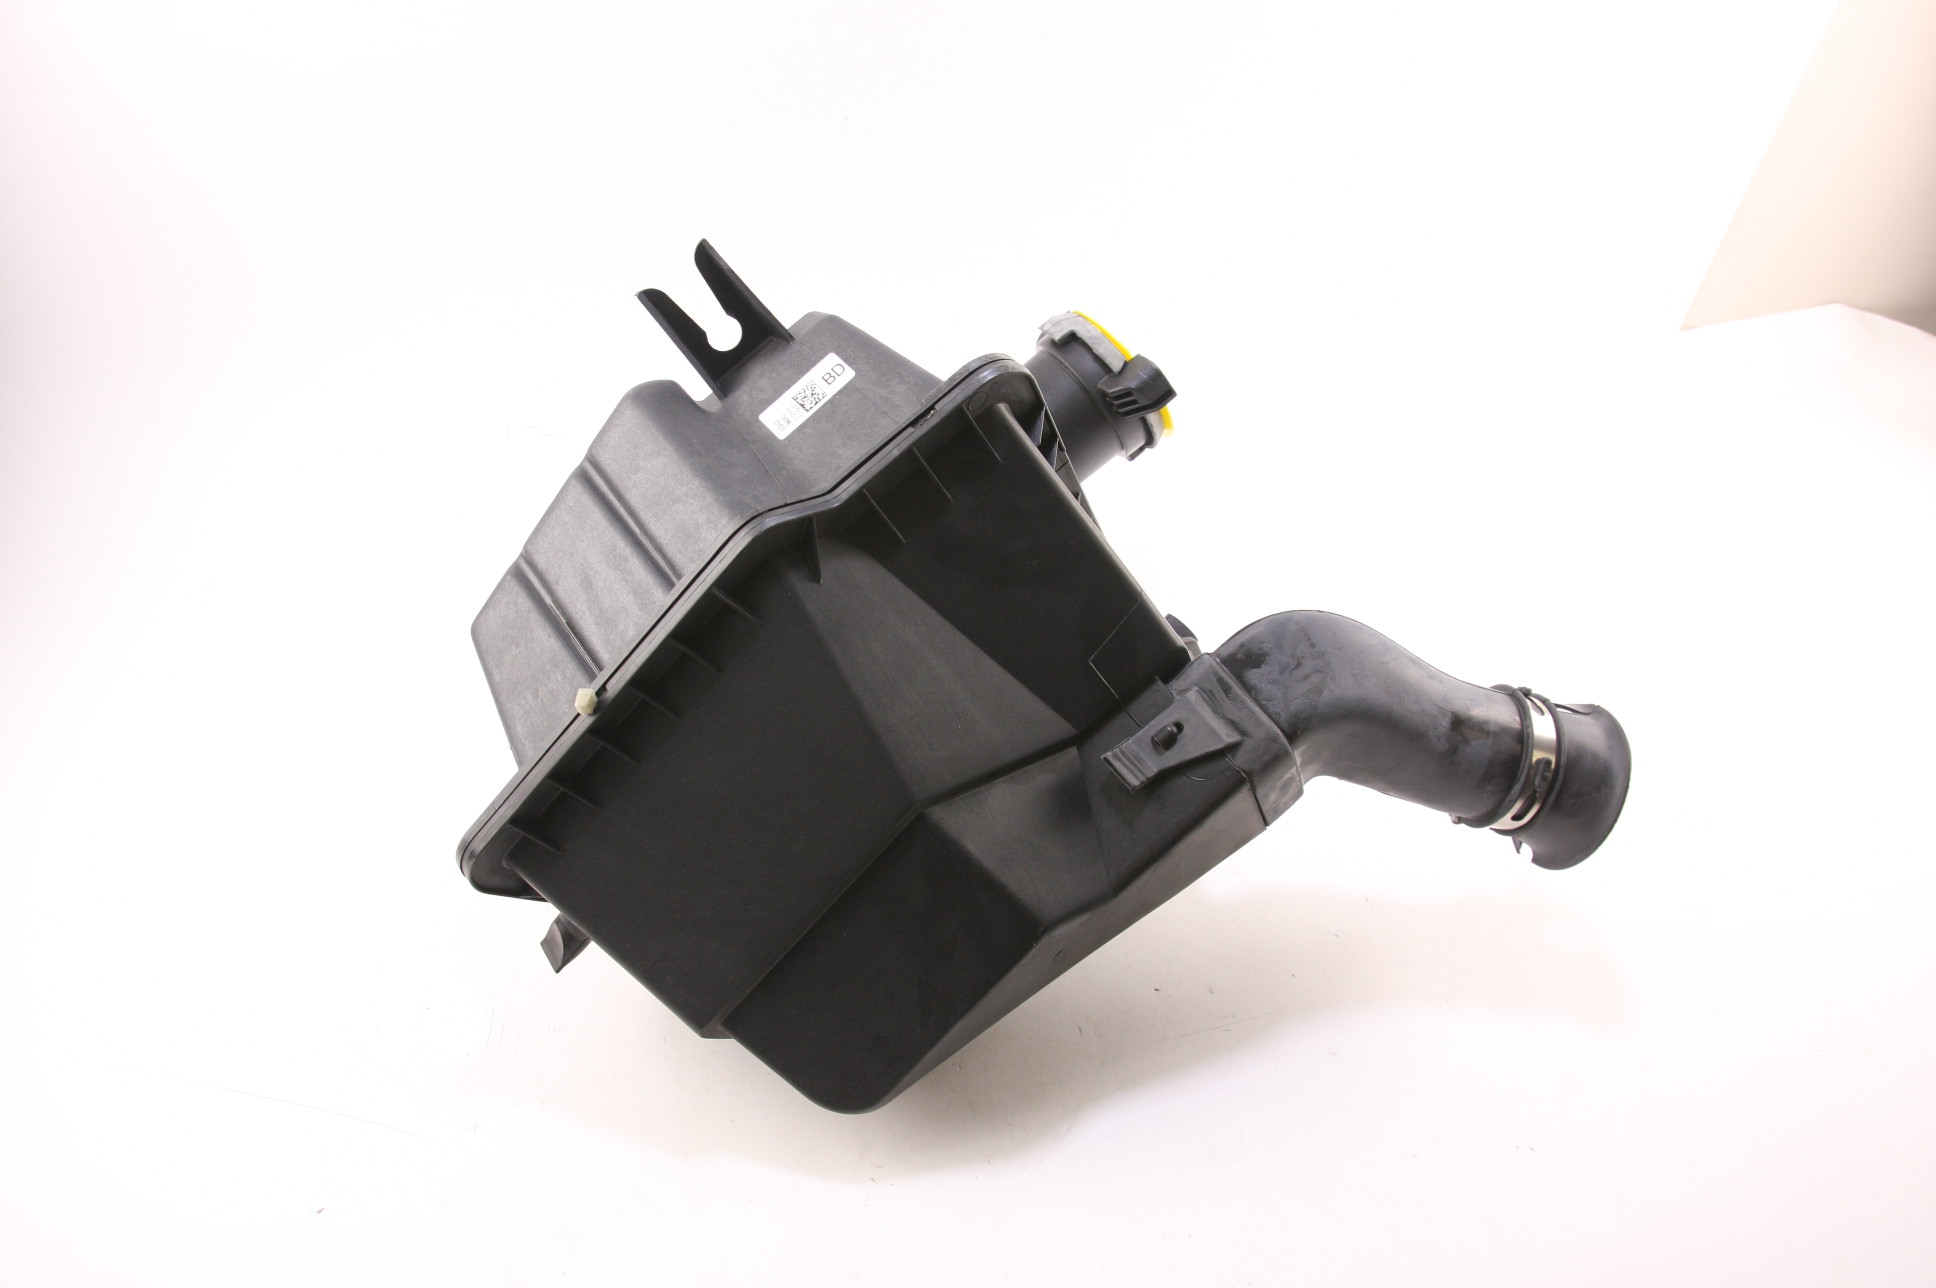 New OEM 4S4Z9600BA Genuine Ford Air Cleaner Assembly Free Shipping NIP - image 8